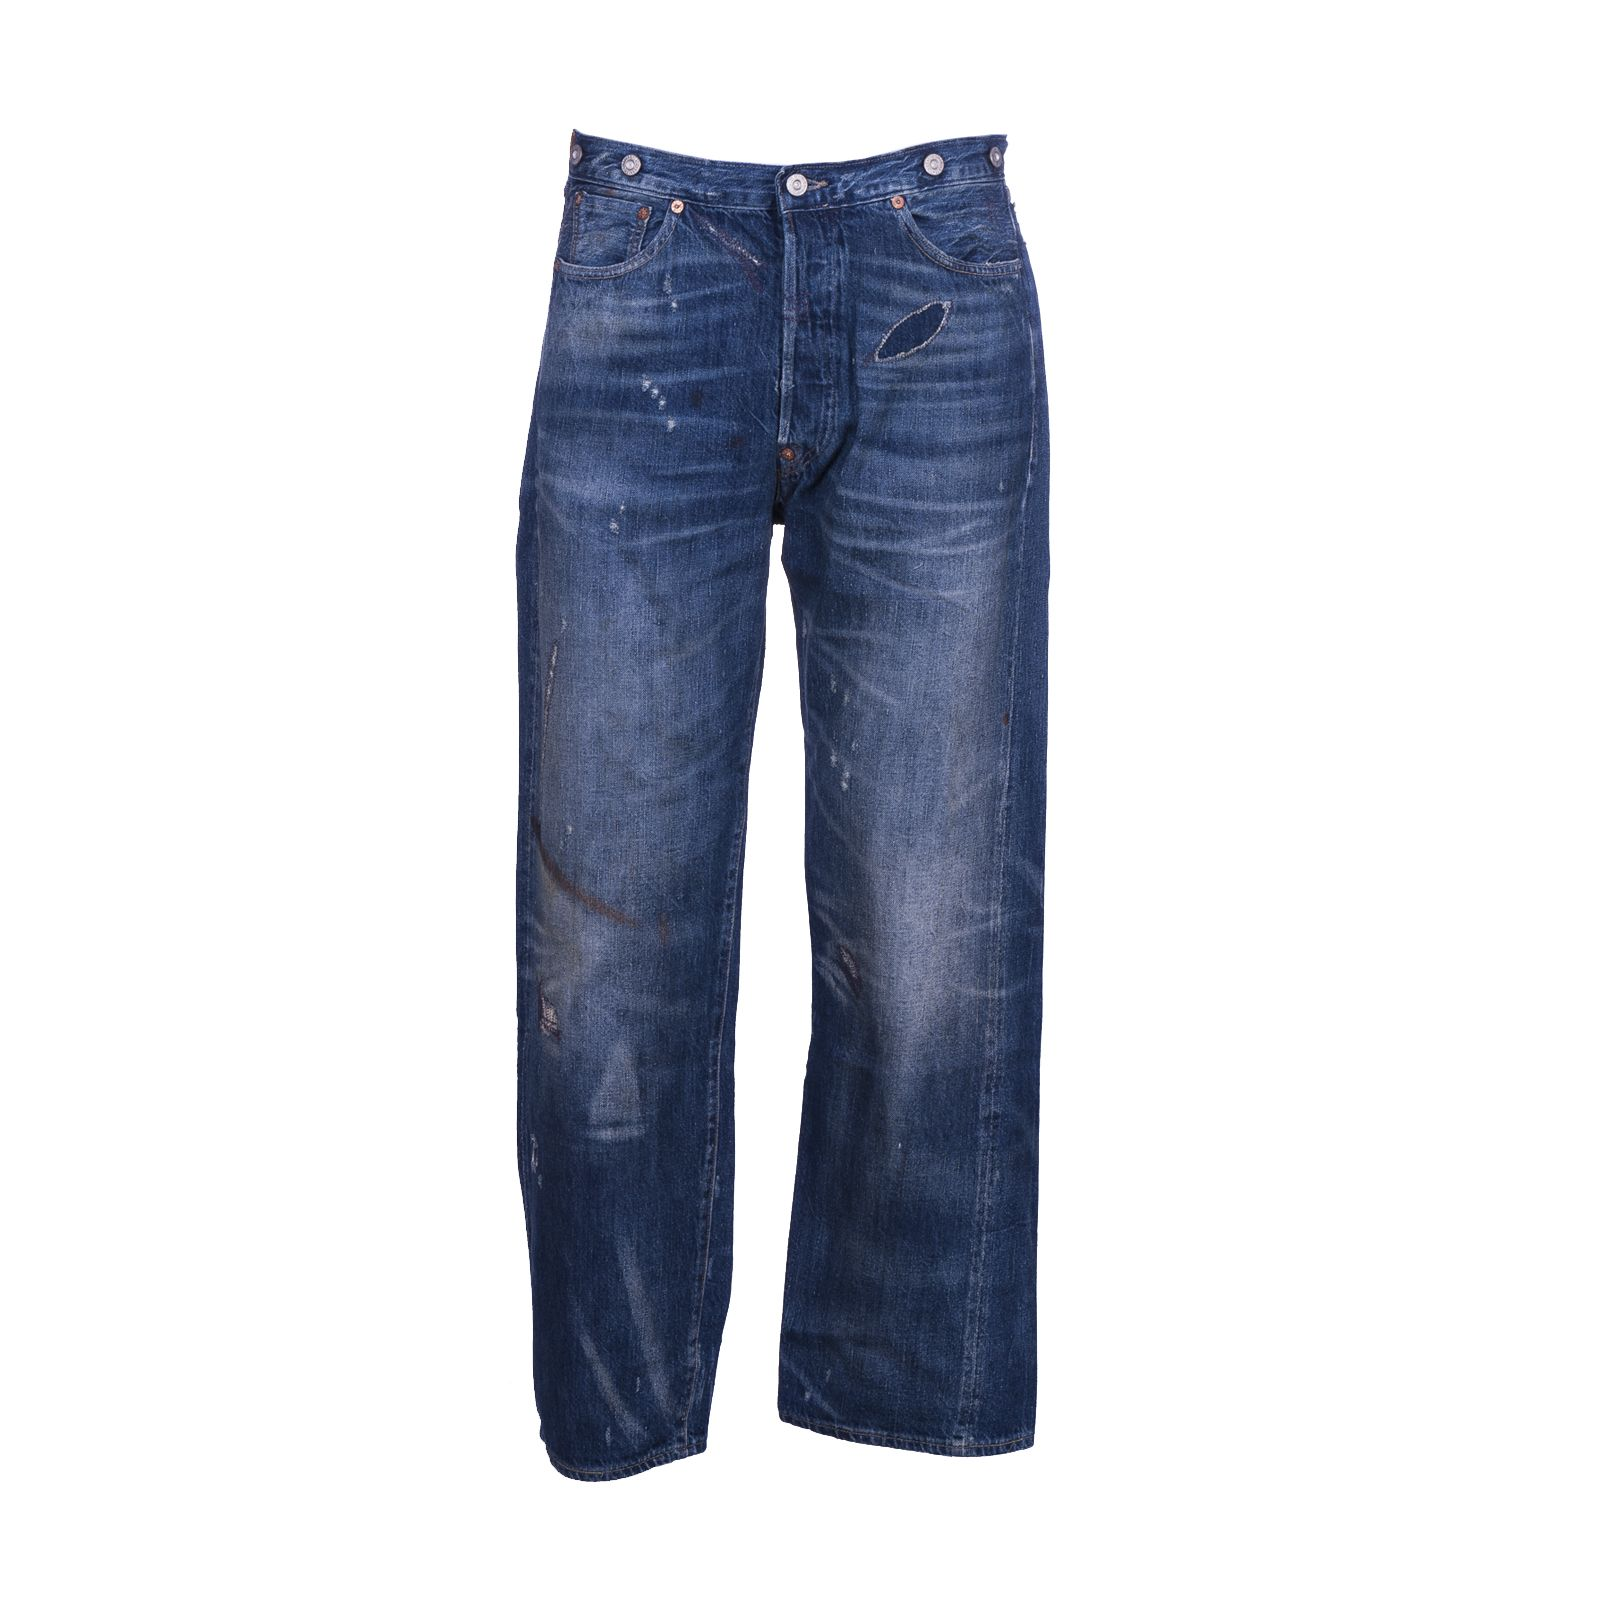 Levis Vintage Clothing Faded Jeans